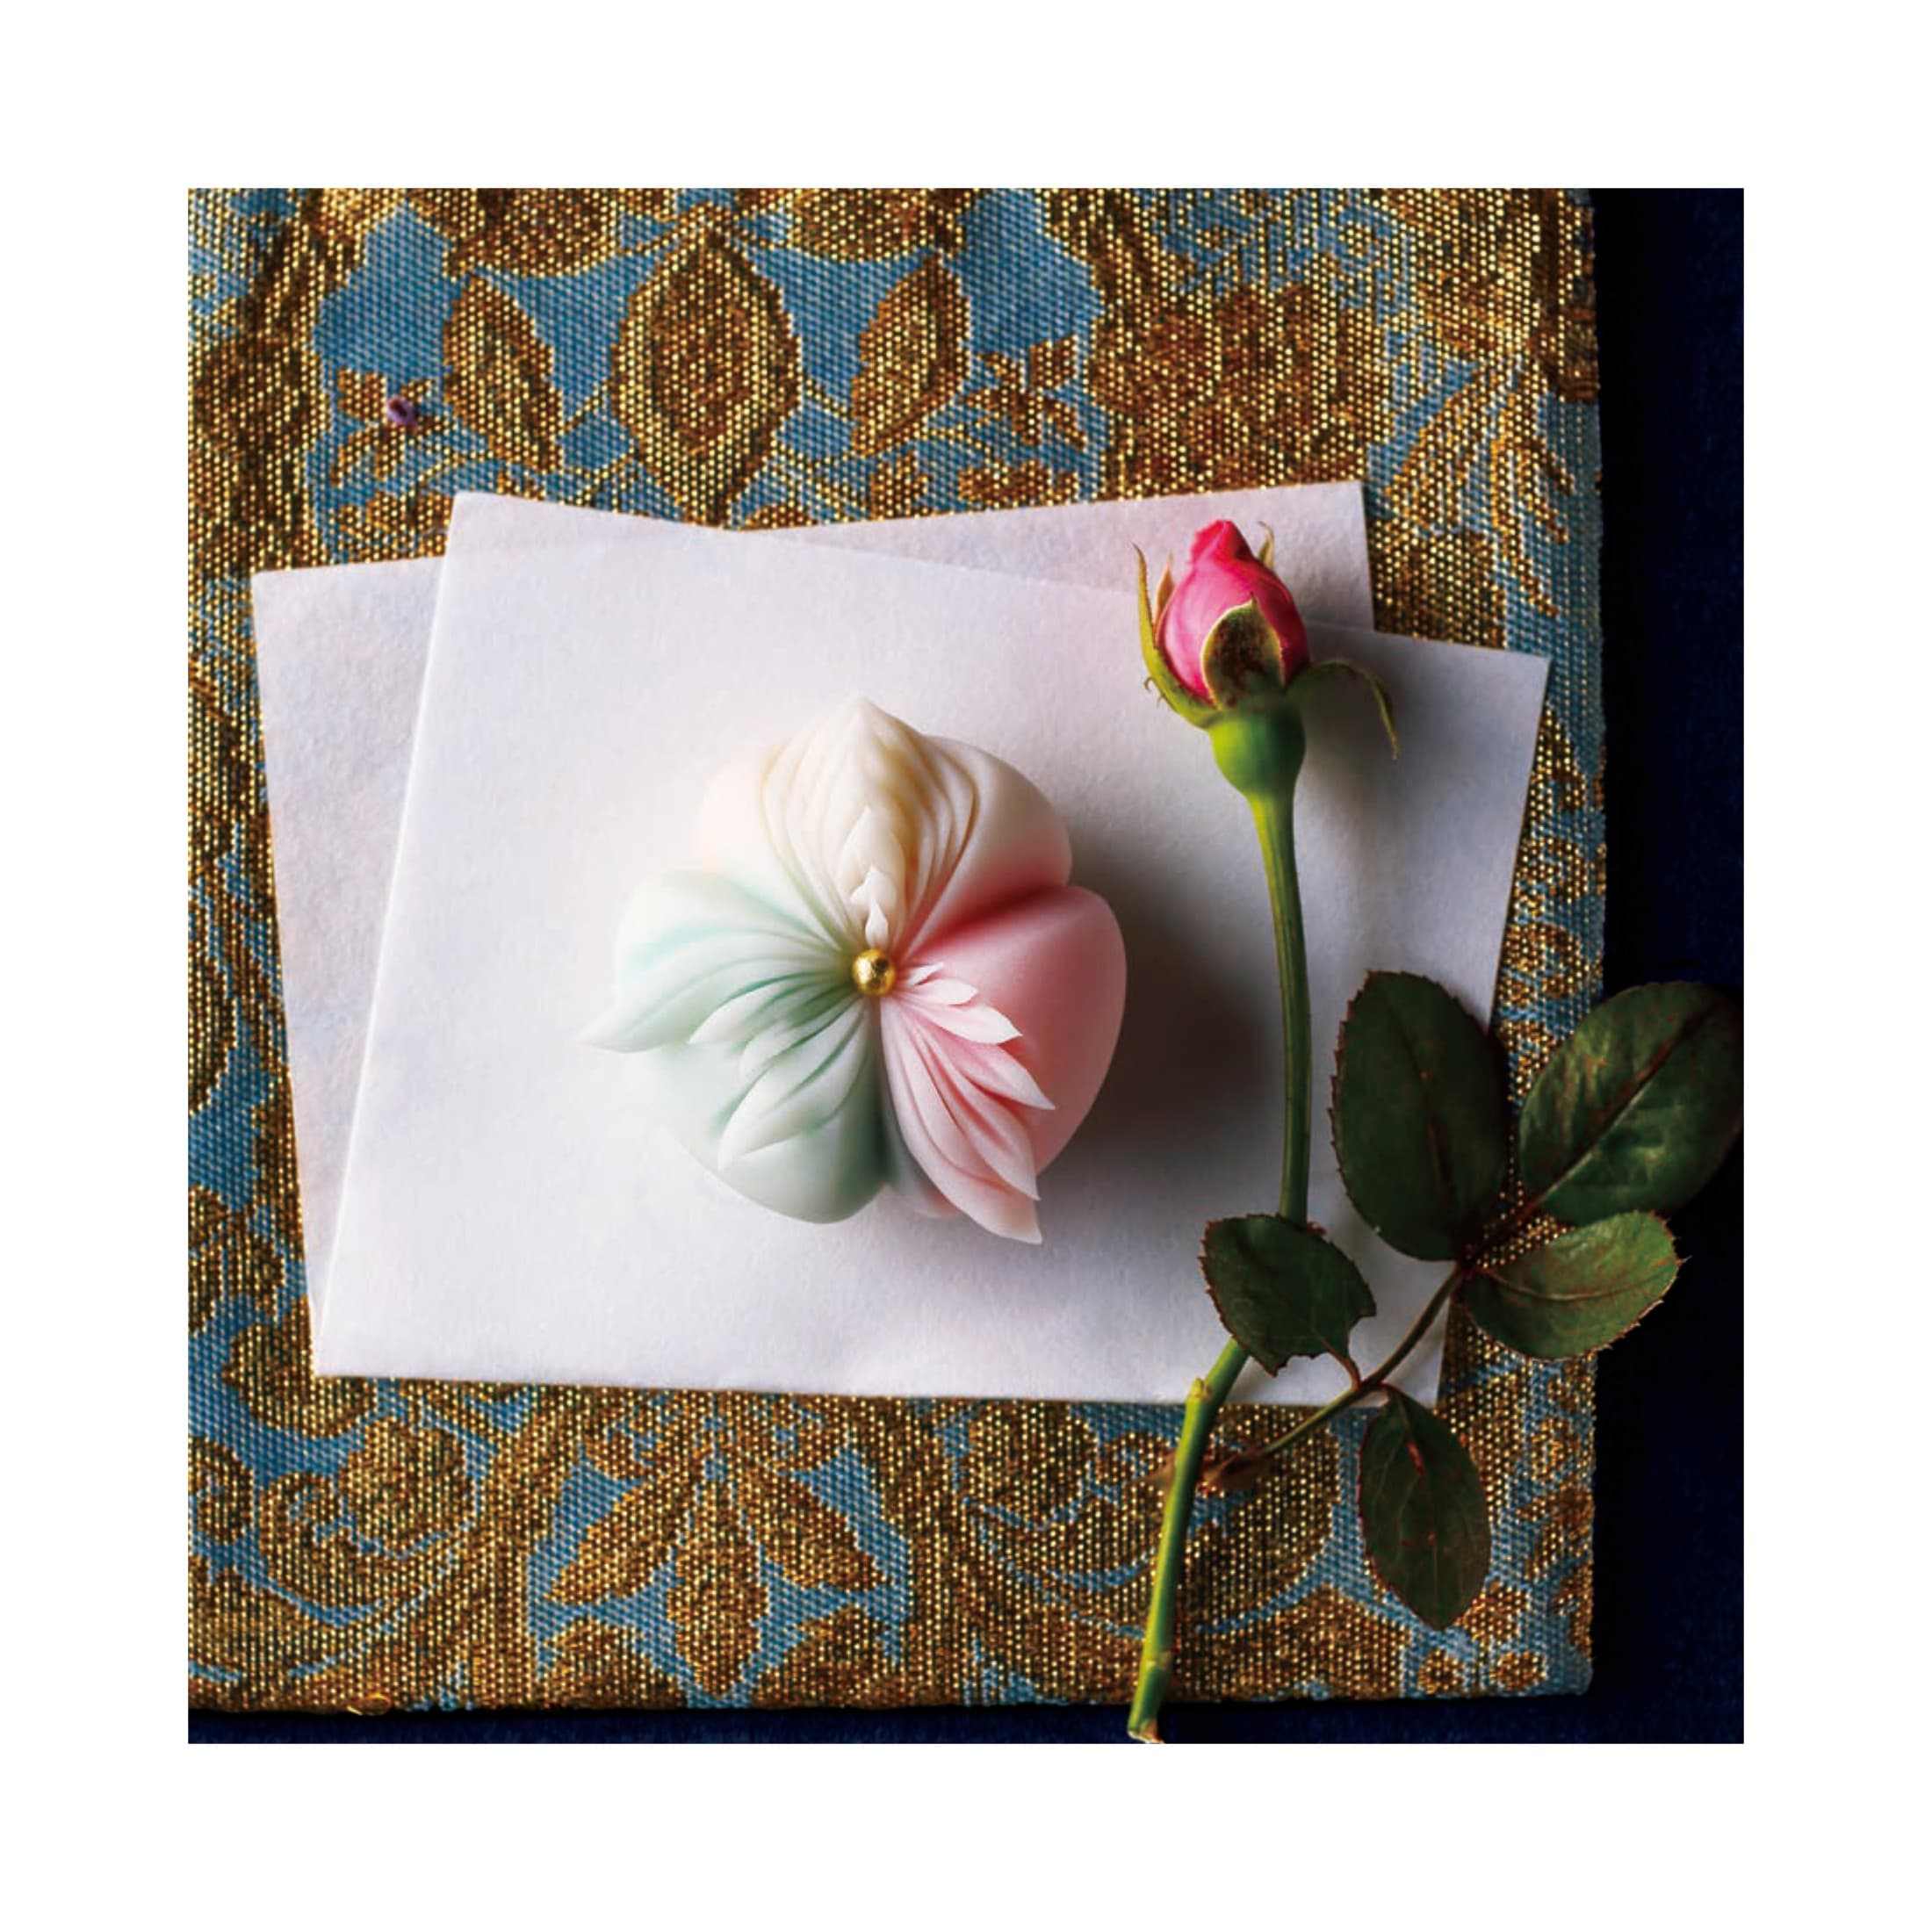 """This wagashi was inspired by France. It symbolizes the national motto of """"Liberty, equality, fraternity"""""""